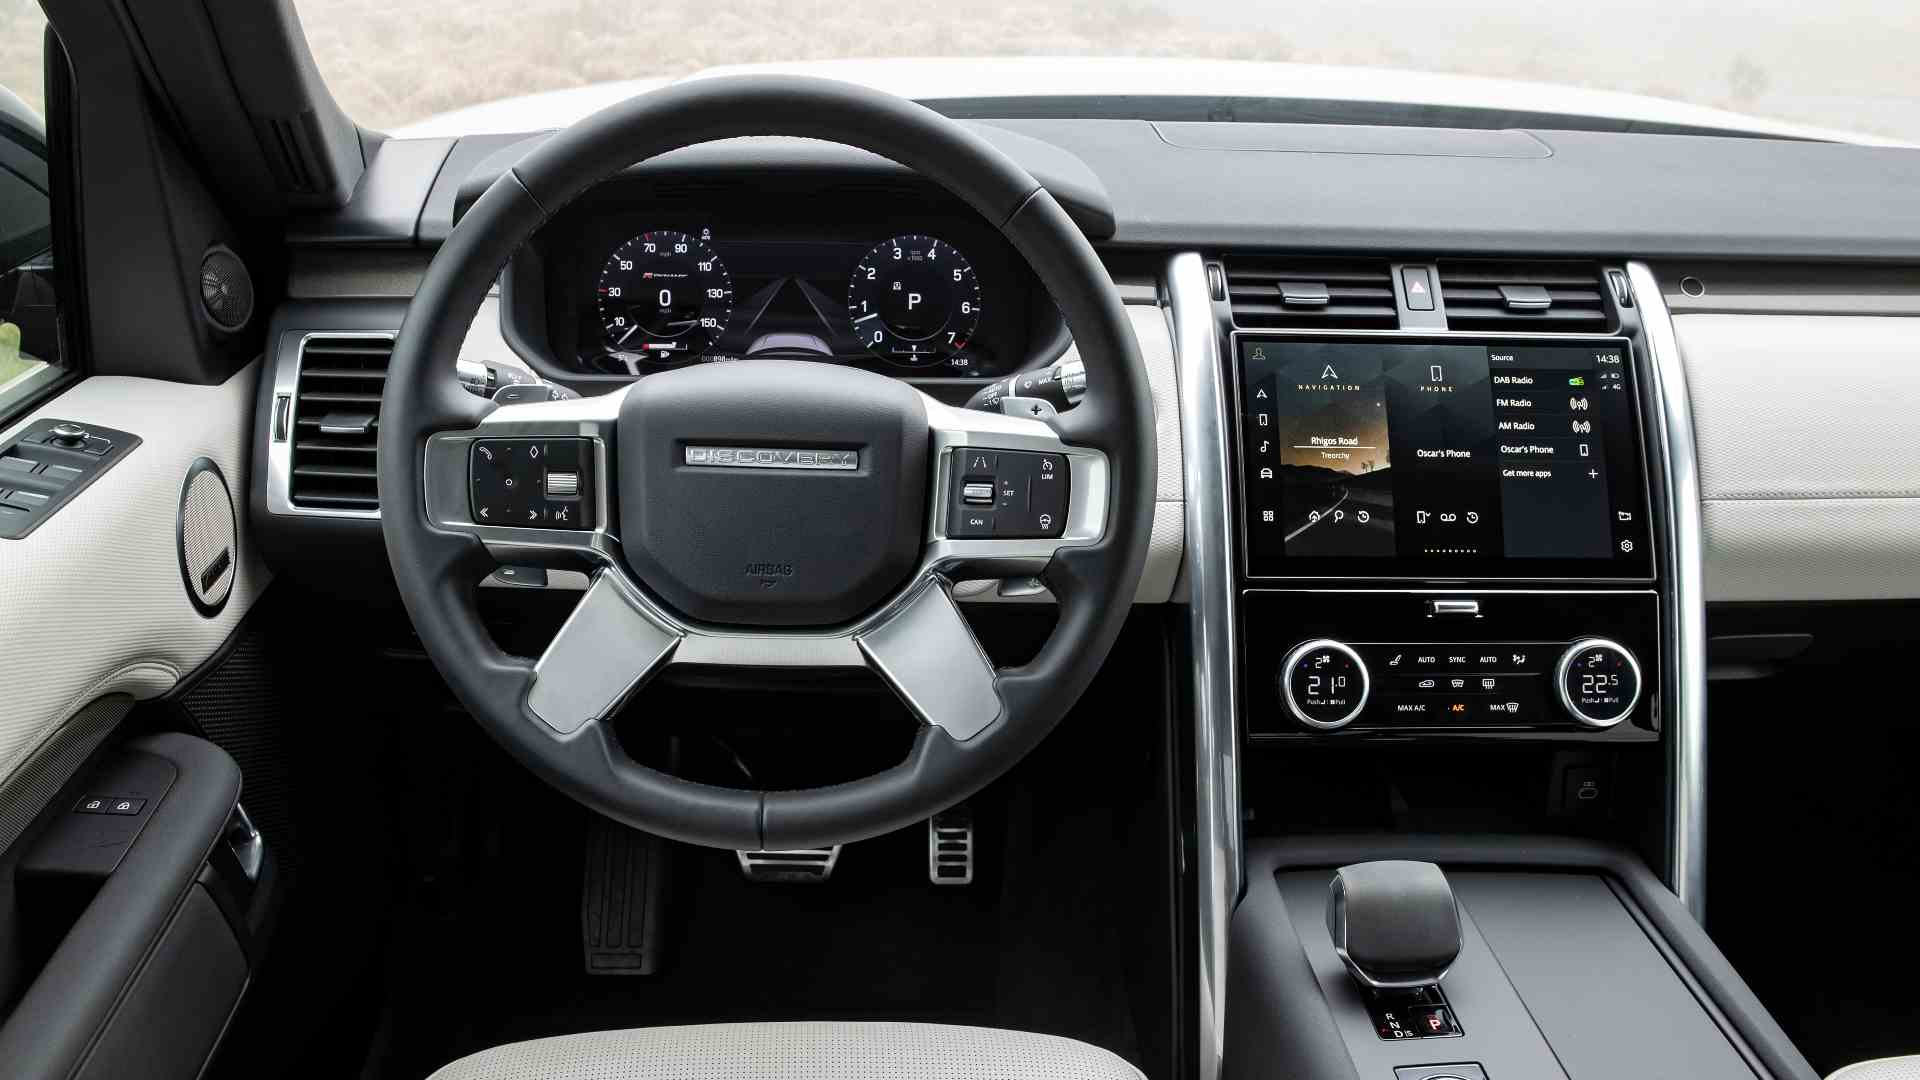 The 11.4-inch Pivi Pro infotainment system is new to the 2021 Land Rover Discovery.  Photo: Land Rover